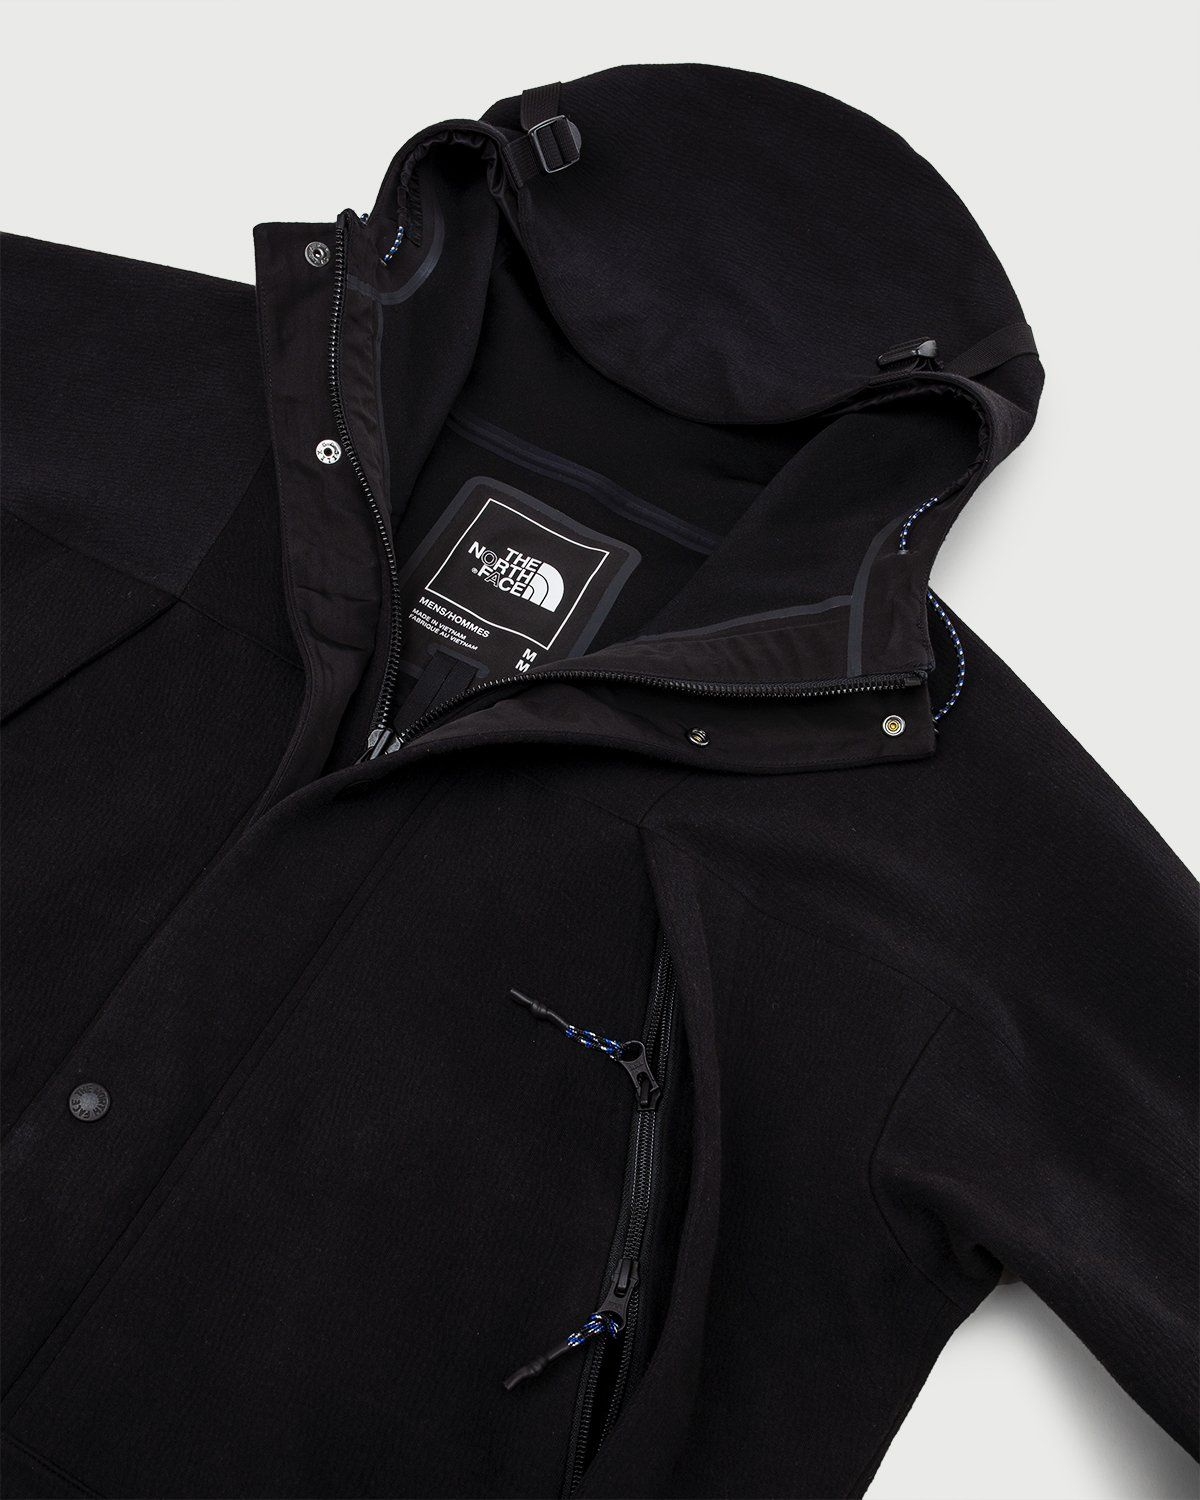 The North Face Black Series — Spacer Knit Mountain Light Jacket Black - Image 4